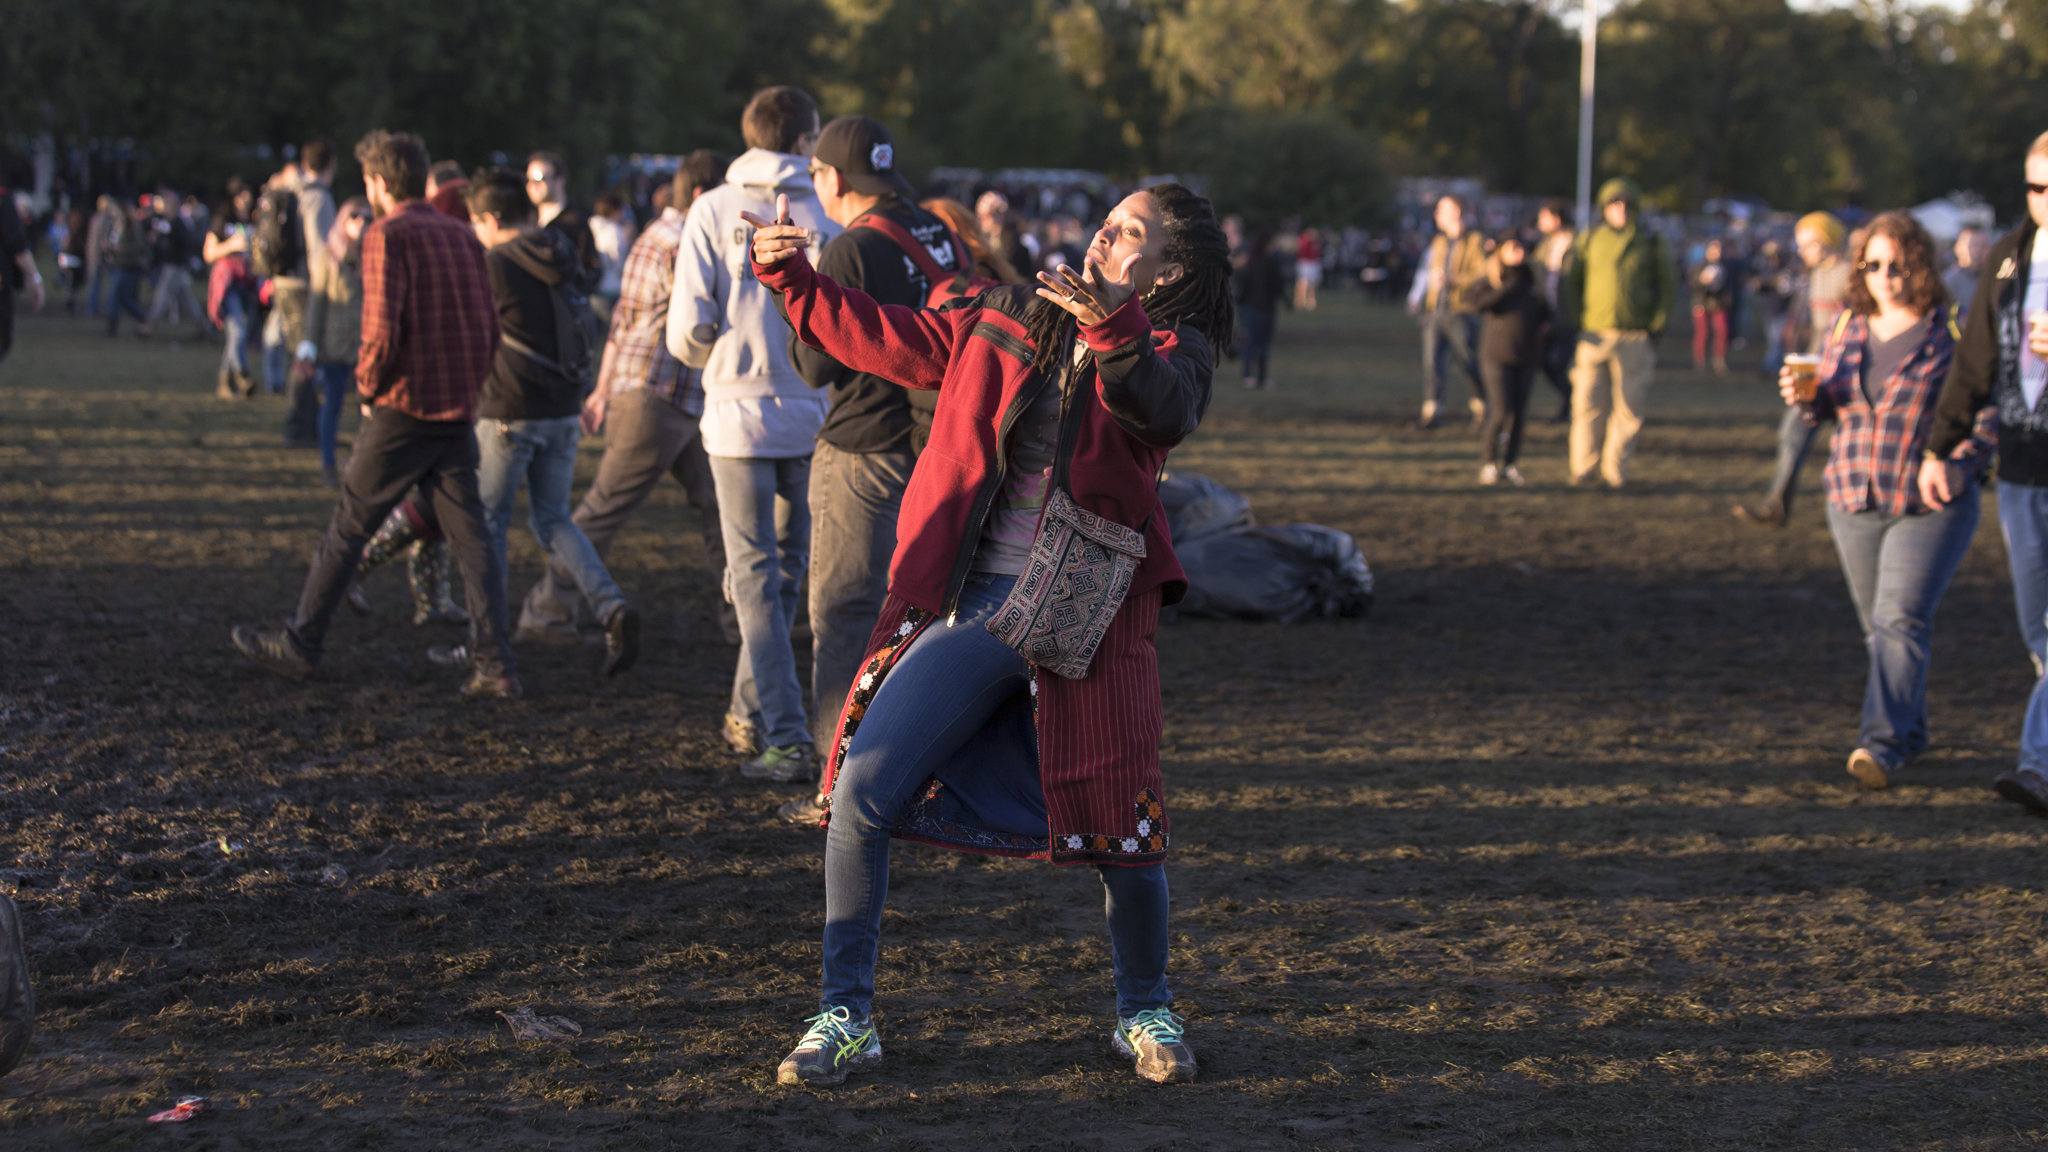 Crowds trudged through muddy fields during the second day of Riot Fest, September 12, 2015.